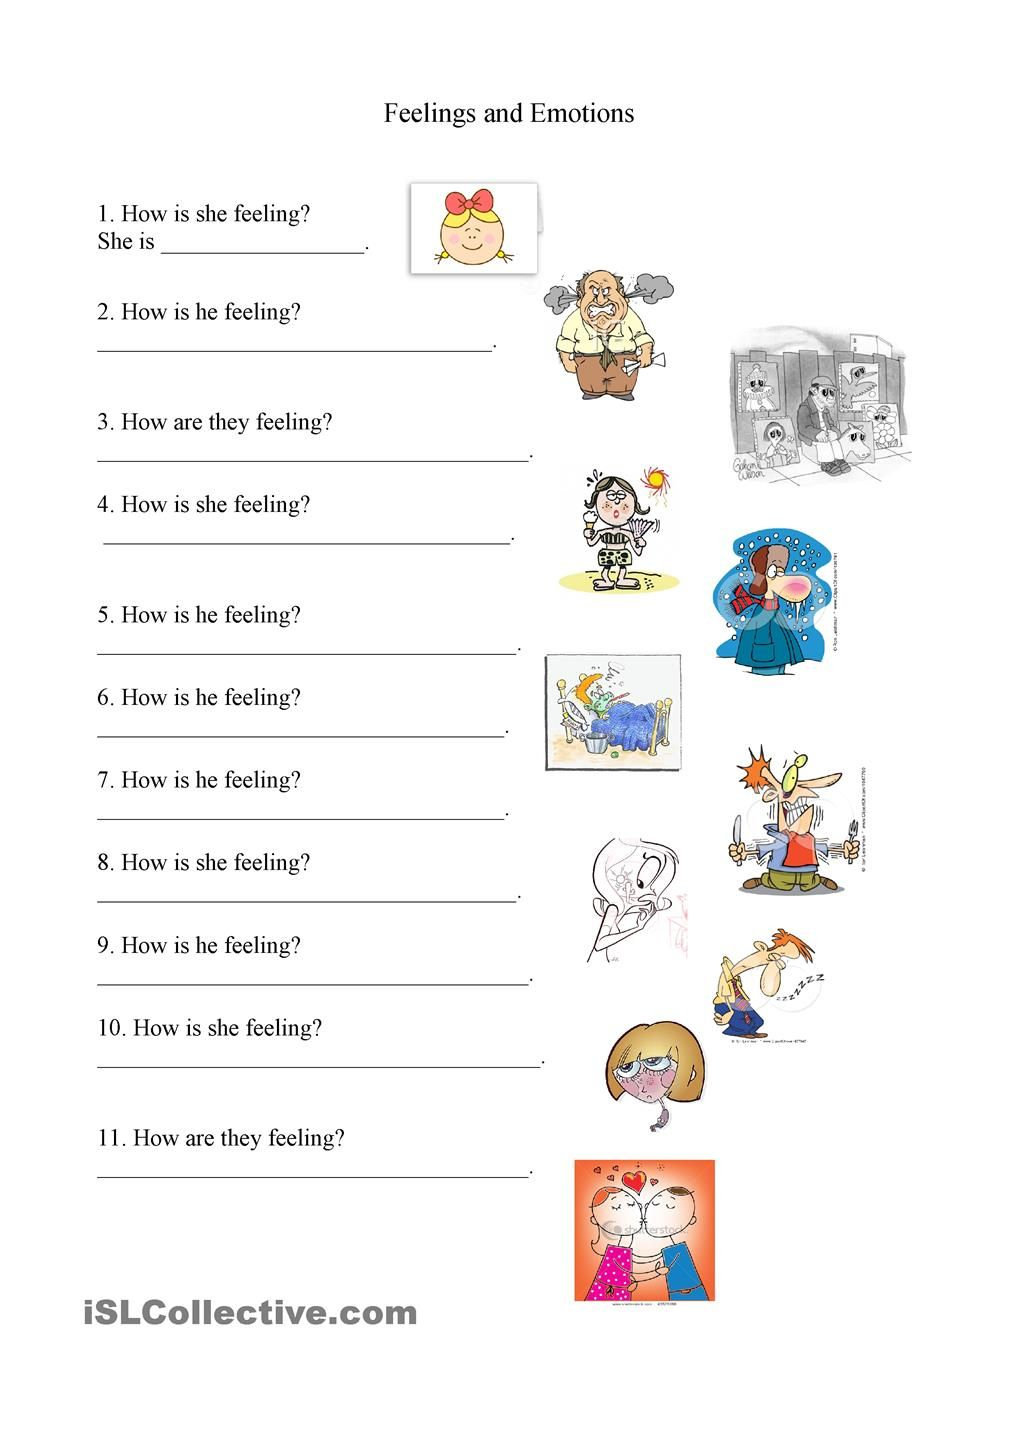 Feelings And Emotions Worksheet | Feelings | Feelings, Emotions | Feelings And Emotions Worksheets Printable